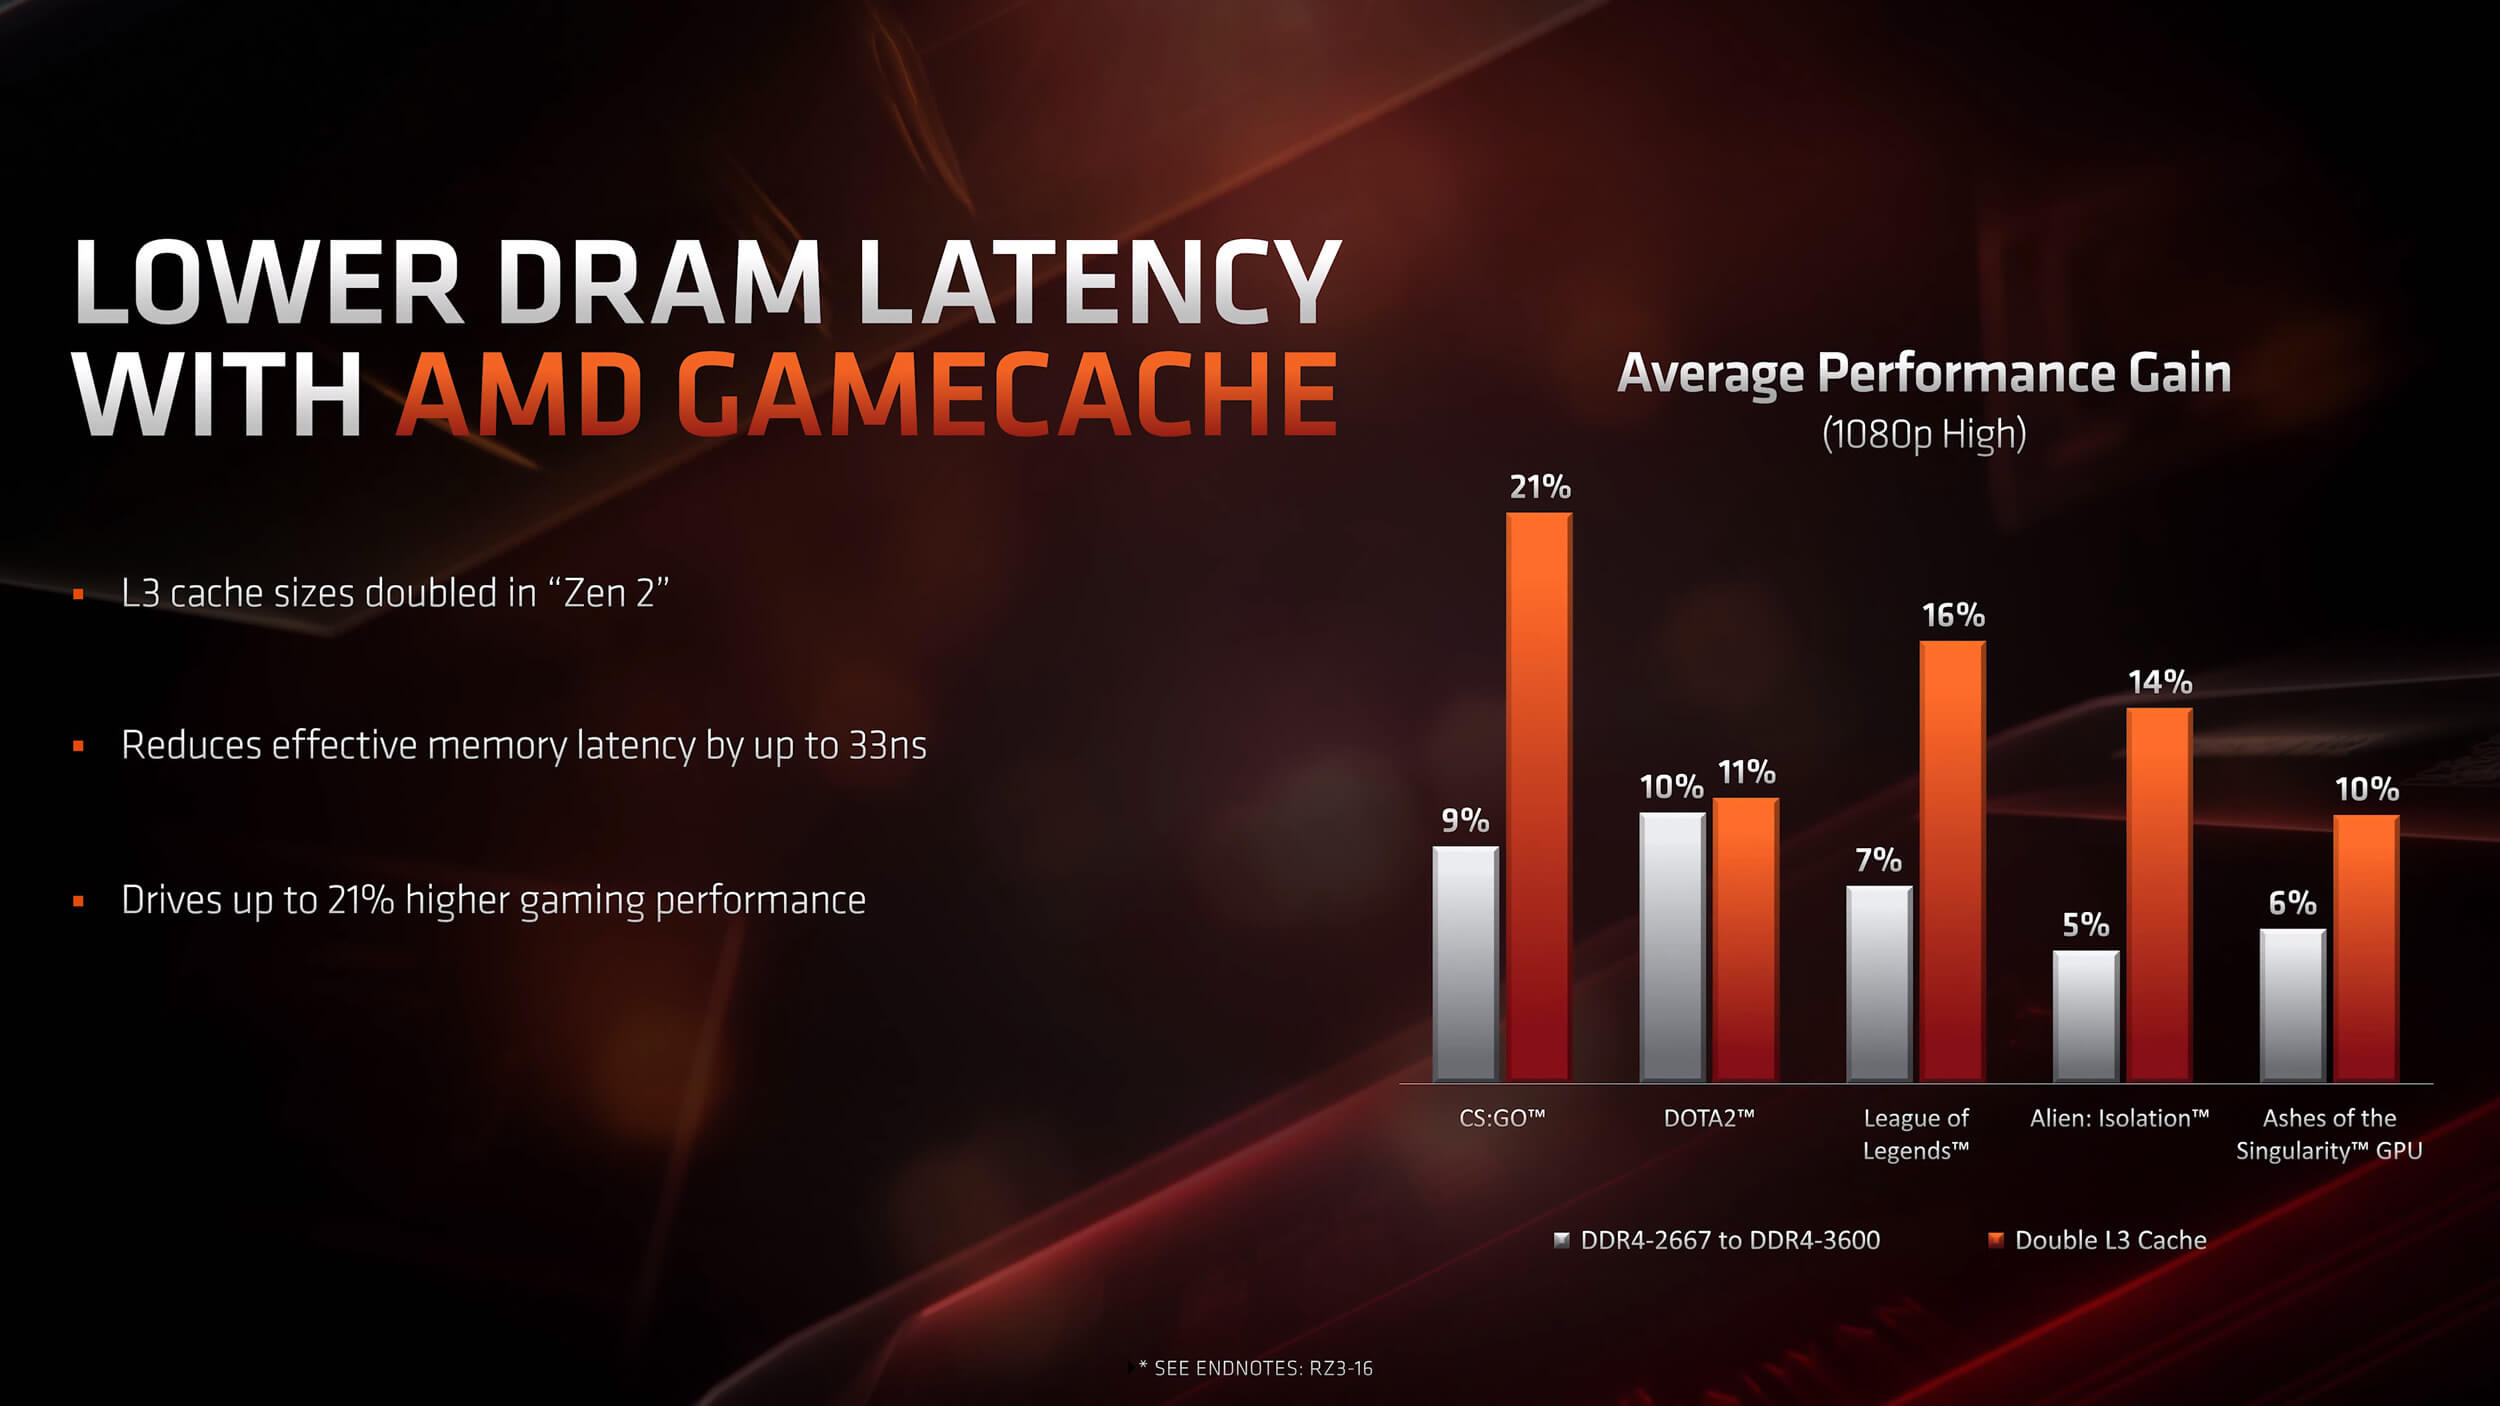 AMD introduces 16-core Ryzen 9 3950X CPU, two Navi Radeon RX 5700